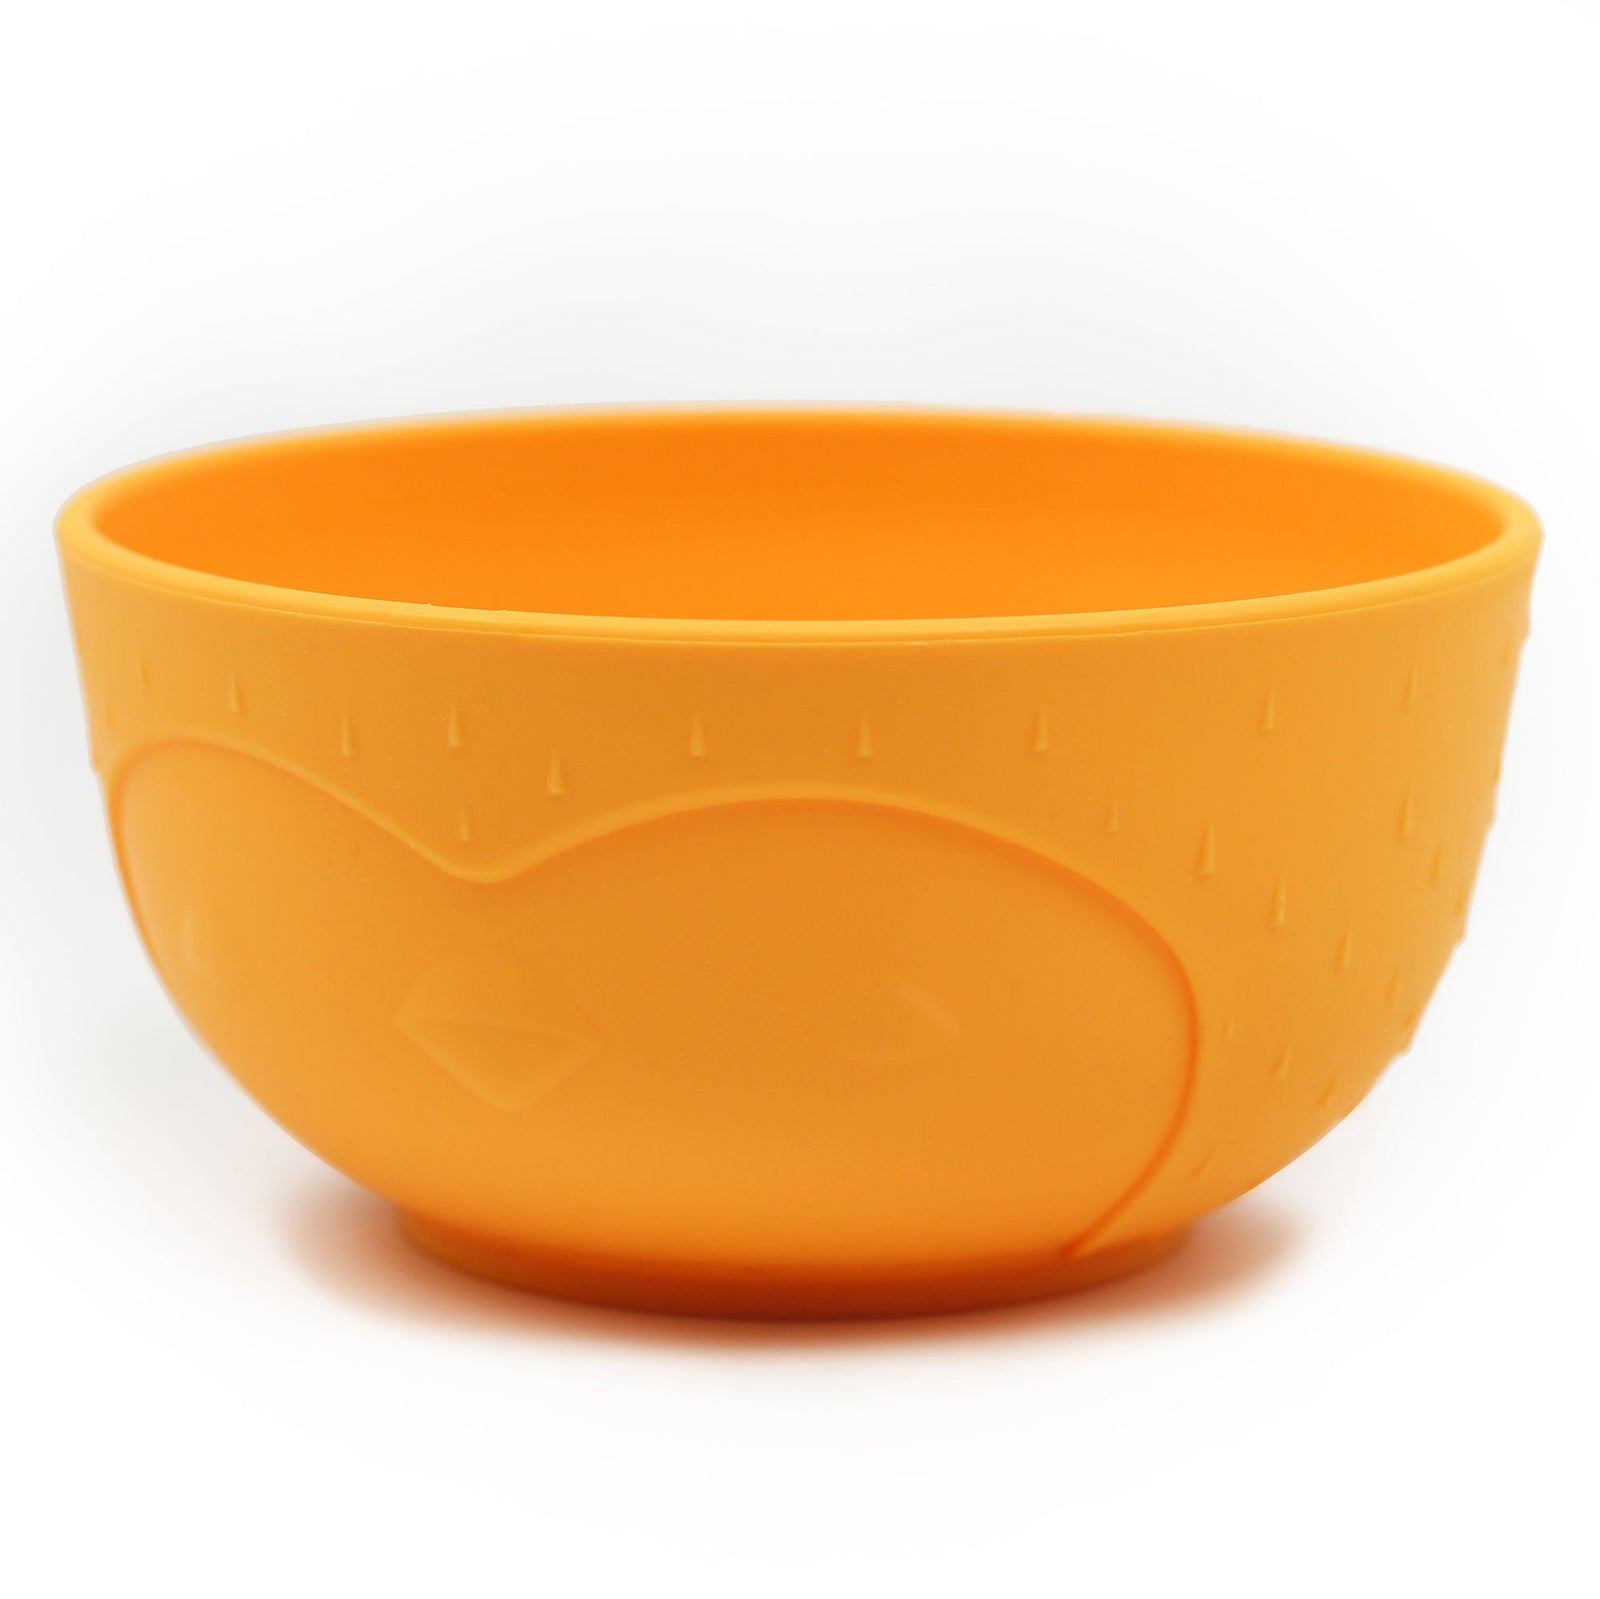 JJ Rabbit® aniBOWLs™ in Orange Peel